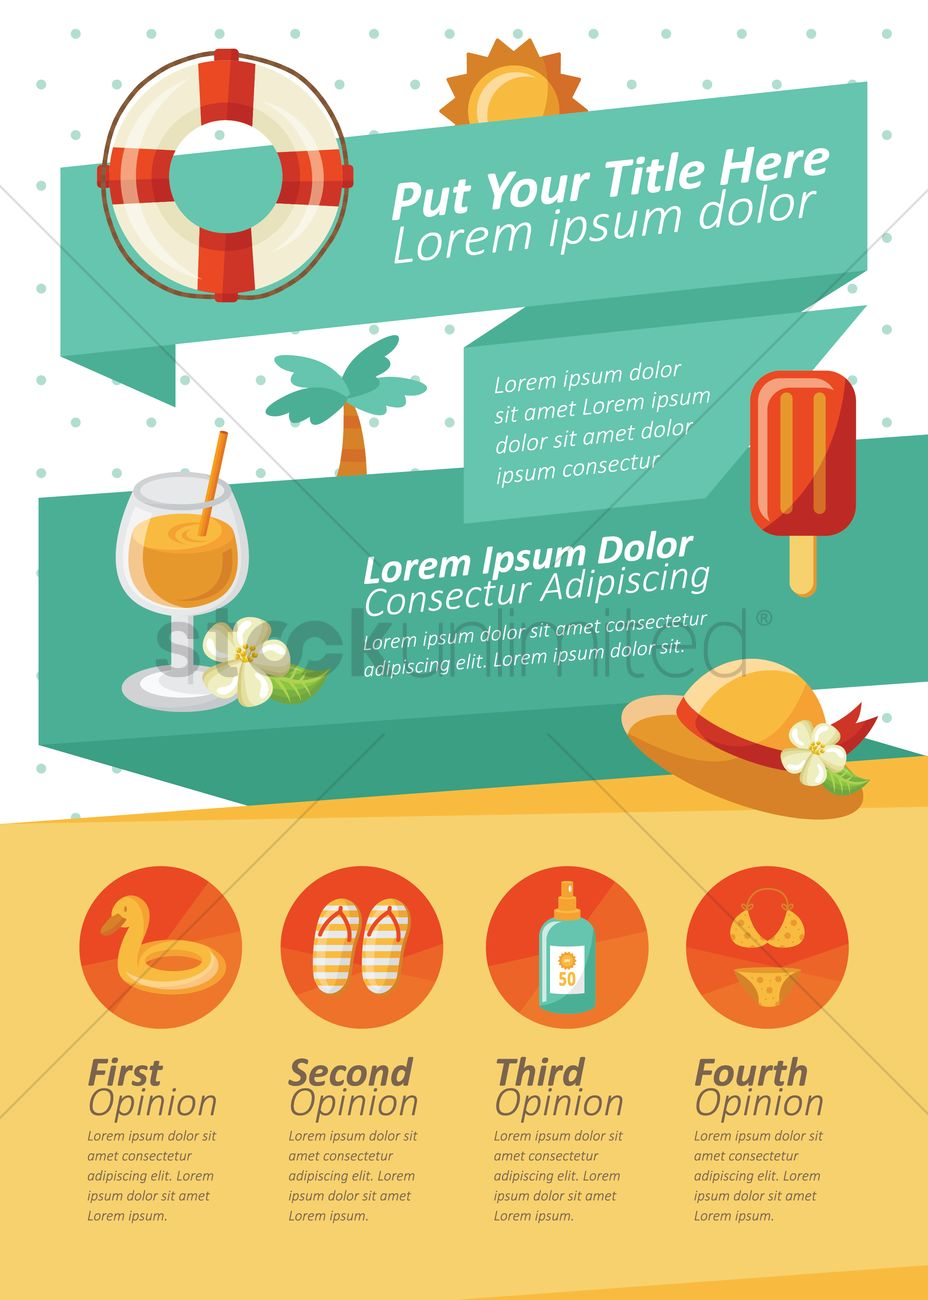 summer themed infographic vector image 1331661 stockunlimited